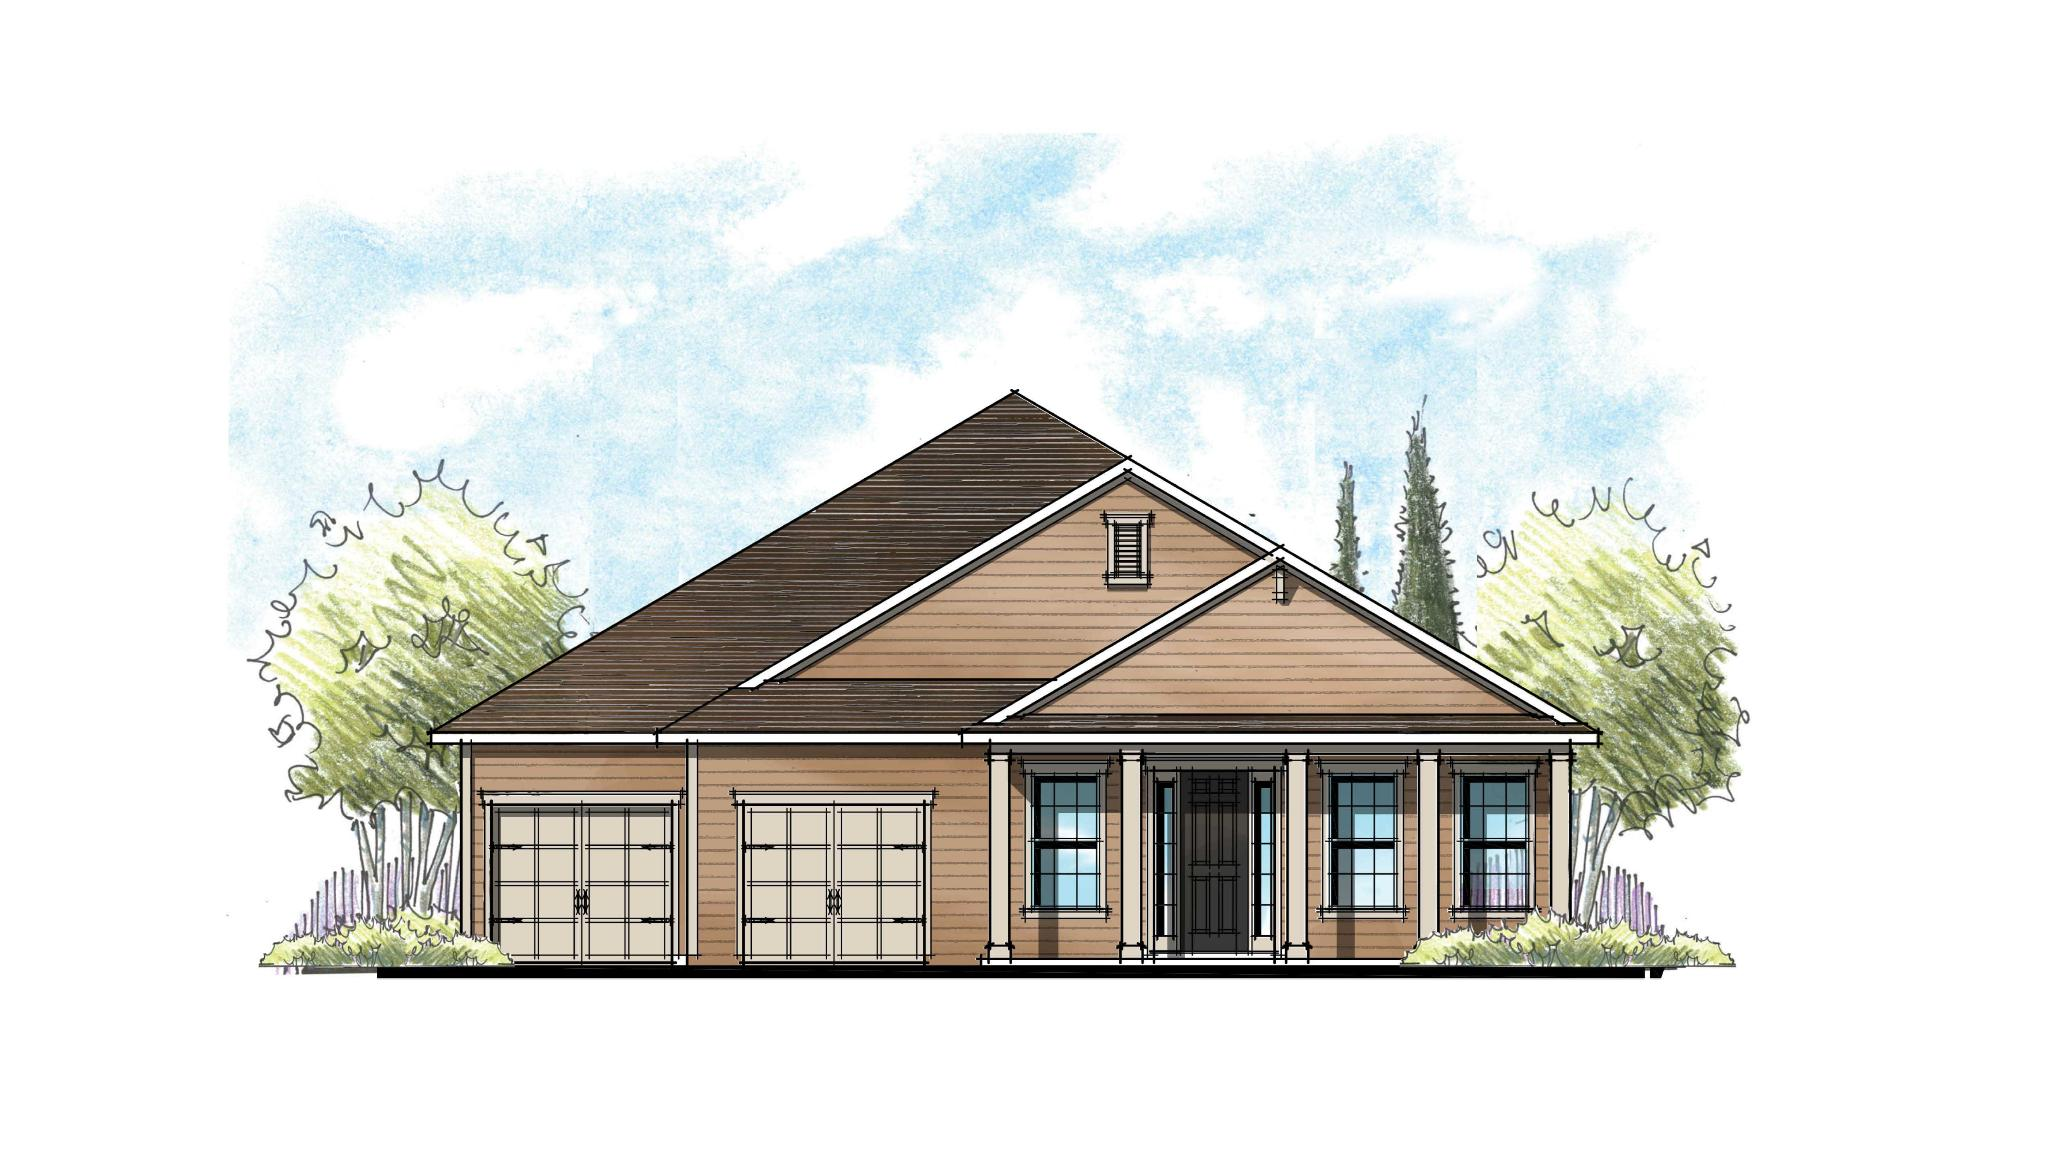 The Magnolia Low Country 3 w/2 Car Garage